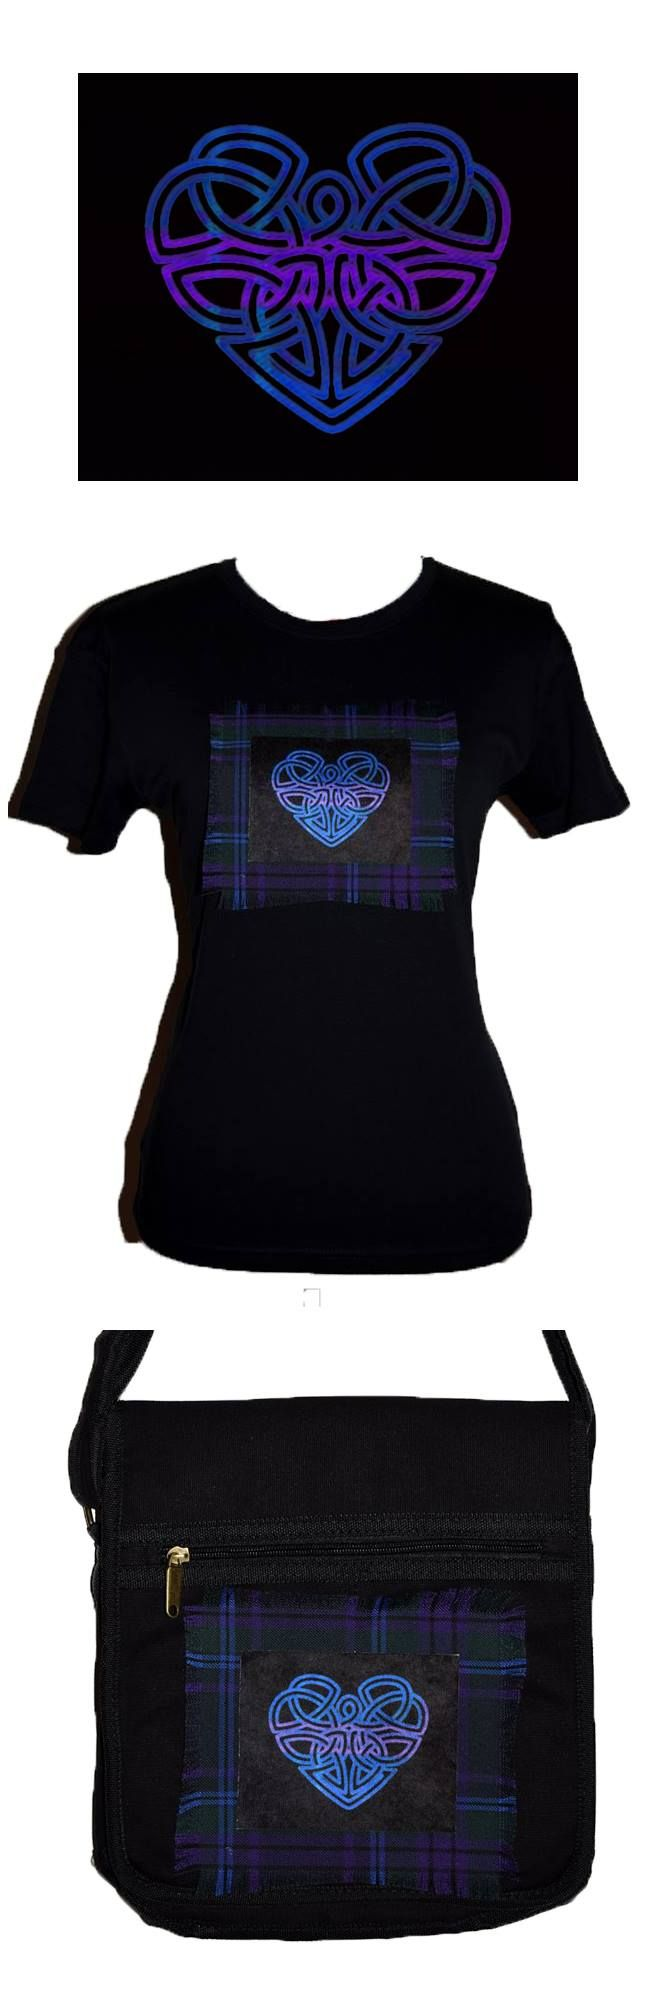 Celtic heart custom made shirt and bag. Stunning sublimation prints onto luxurious velvet fabric and beautiful tartan. Designed and hand made in Scotland by MoNkA. https://www.facebook.com/monka.rocks/